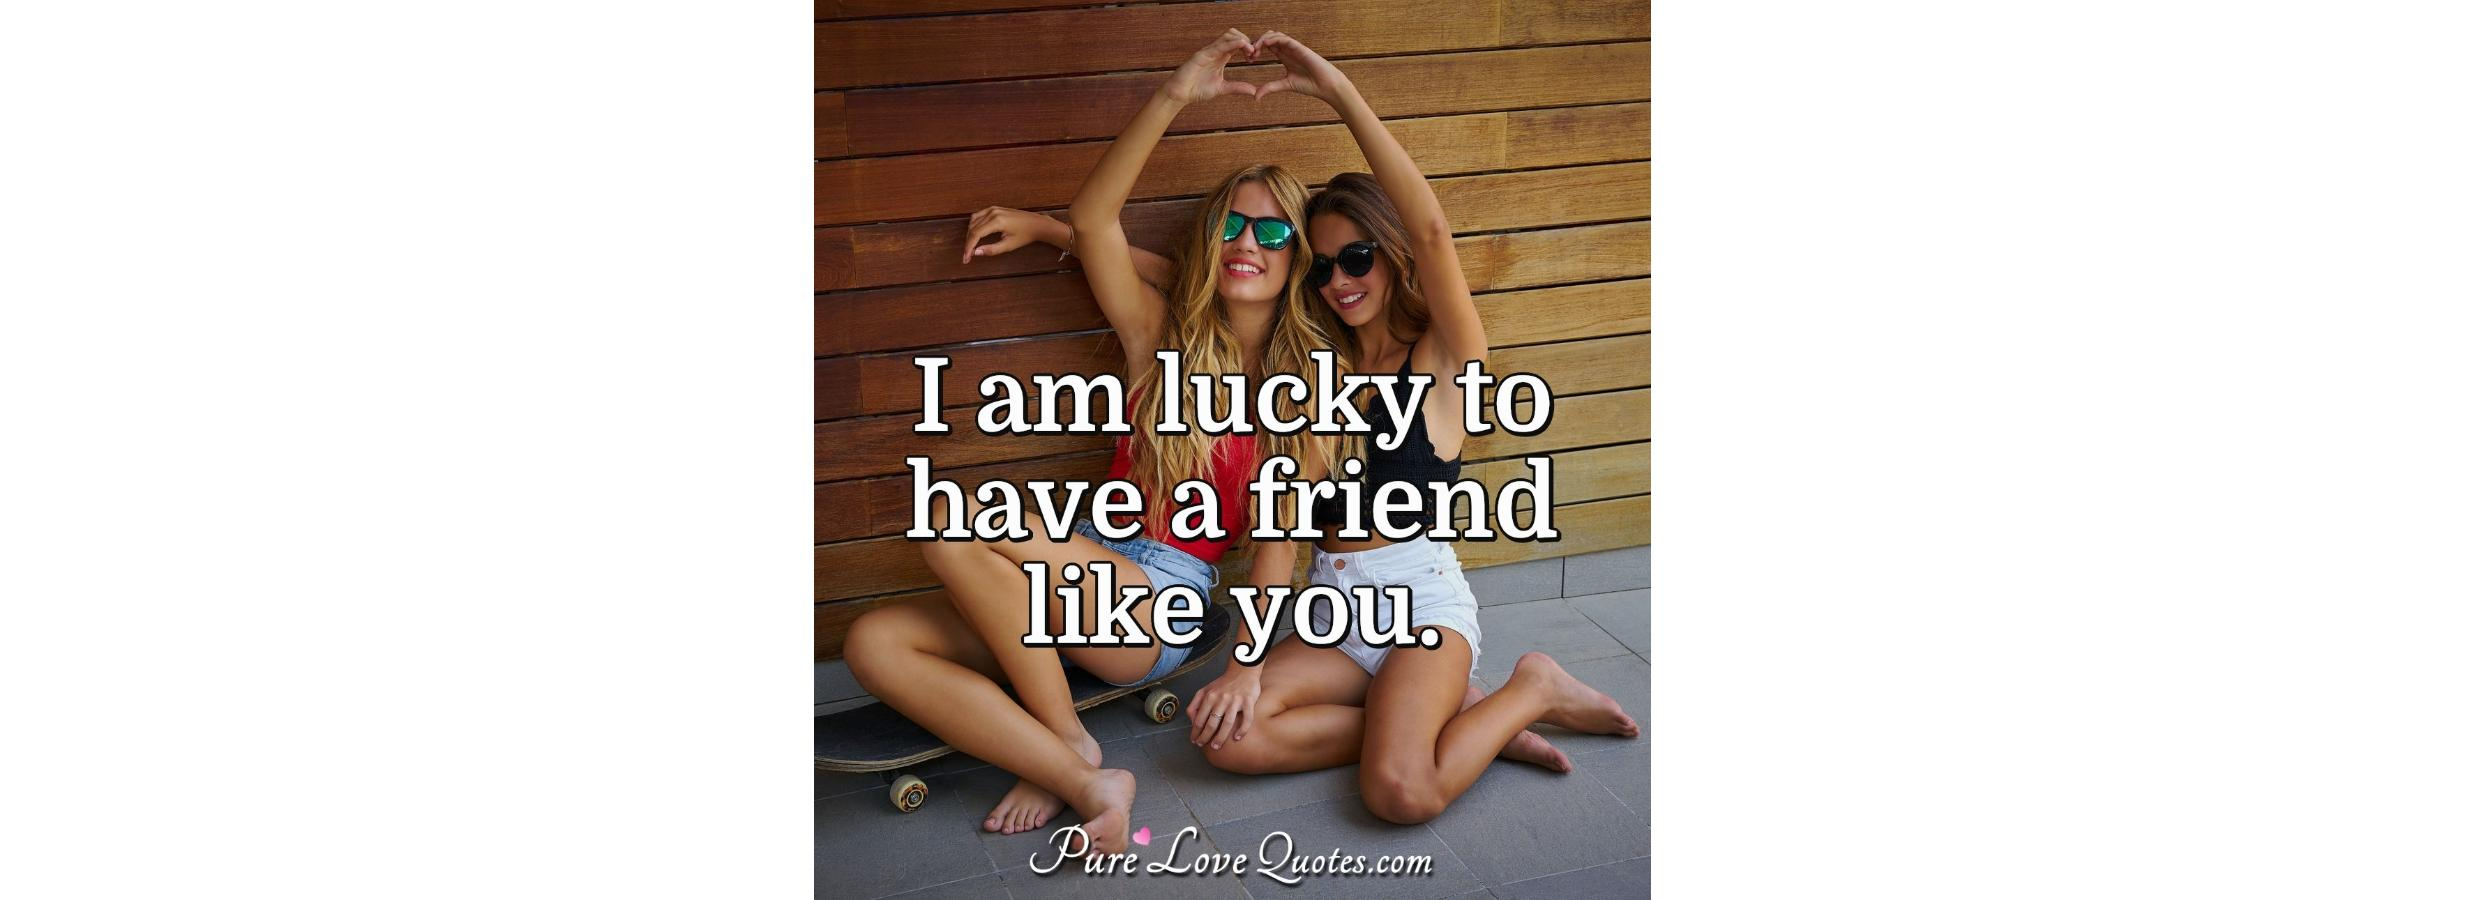 I Am Lucky To Have A Friend Like You Purelovequotes